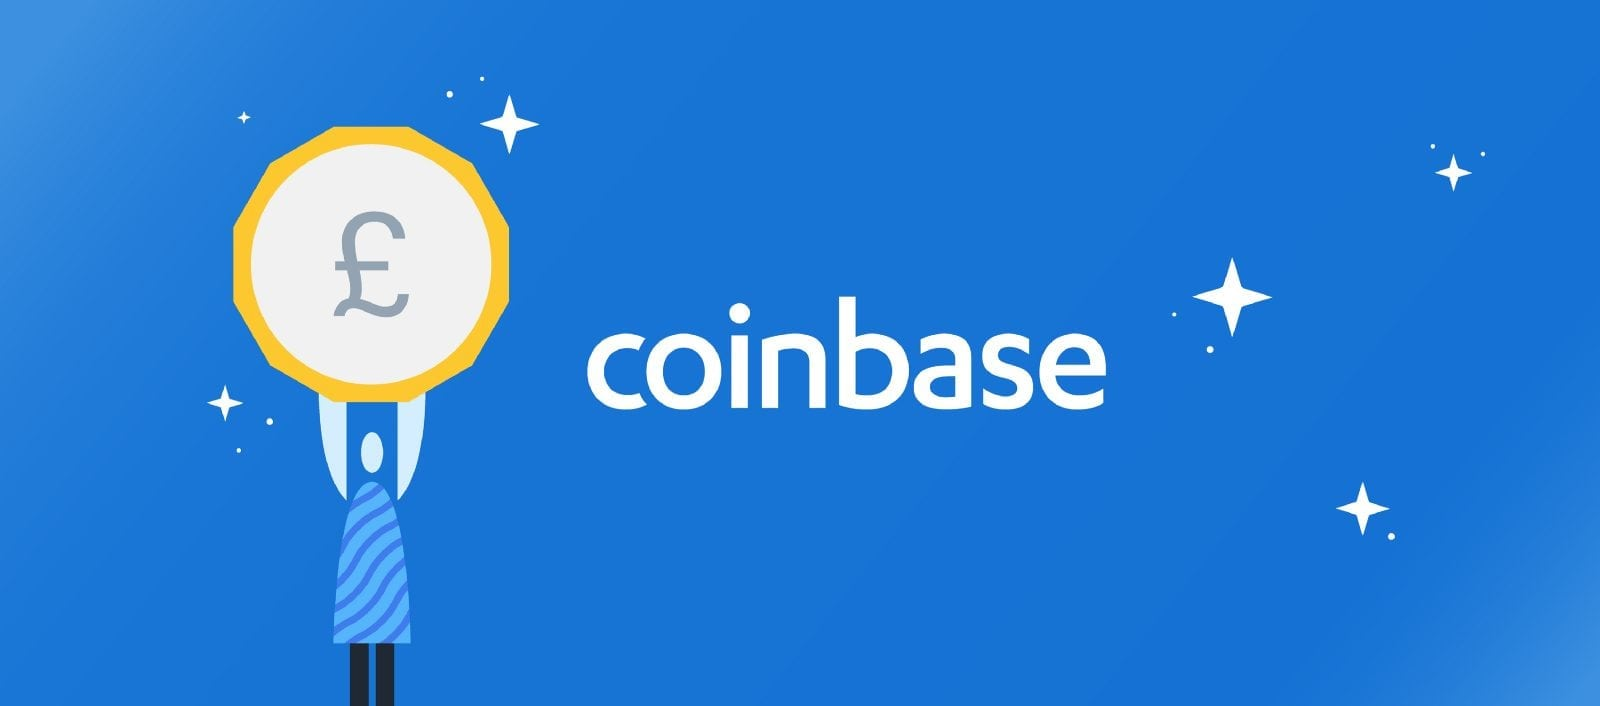 1 HjdPwnTIt20SBC6iInfNGQ - Coinbase Announces That Users Can Buy Bitcoin And Other Cryptos With GBP